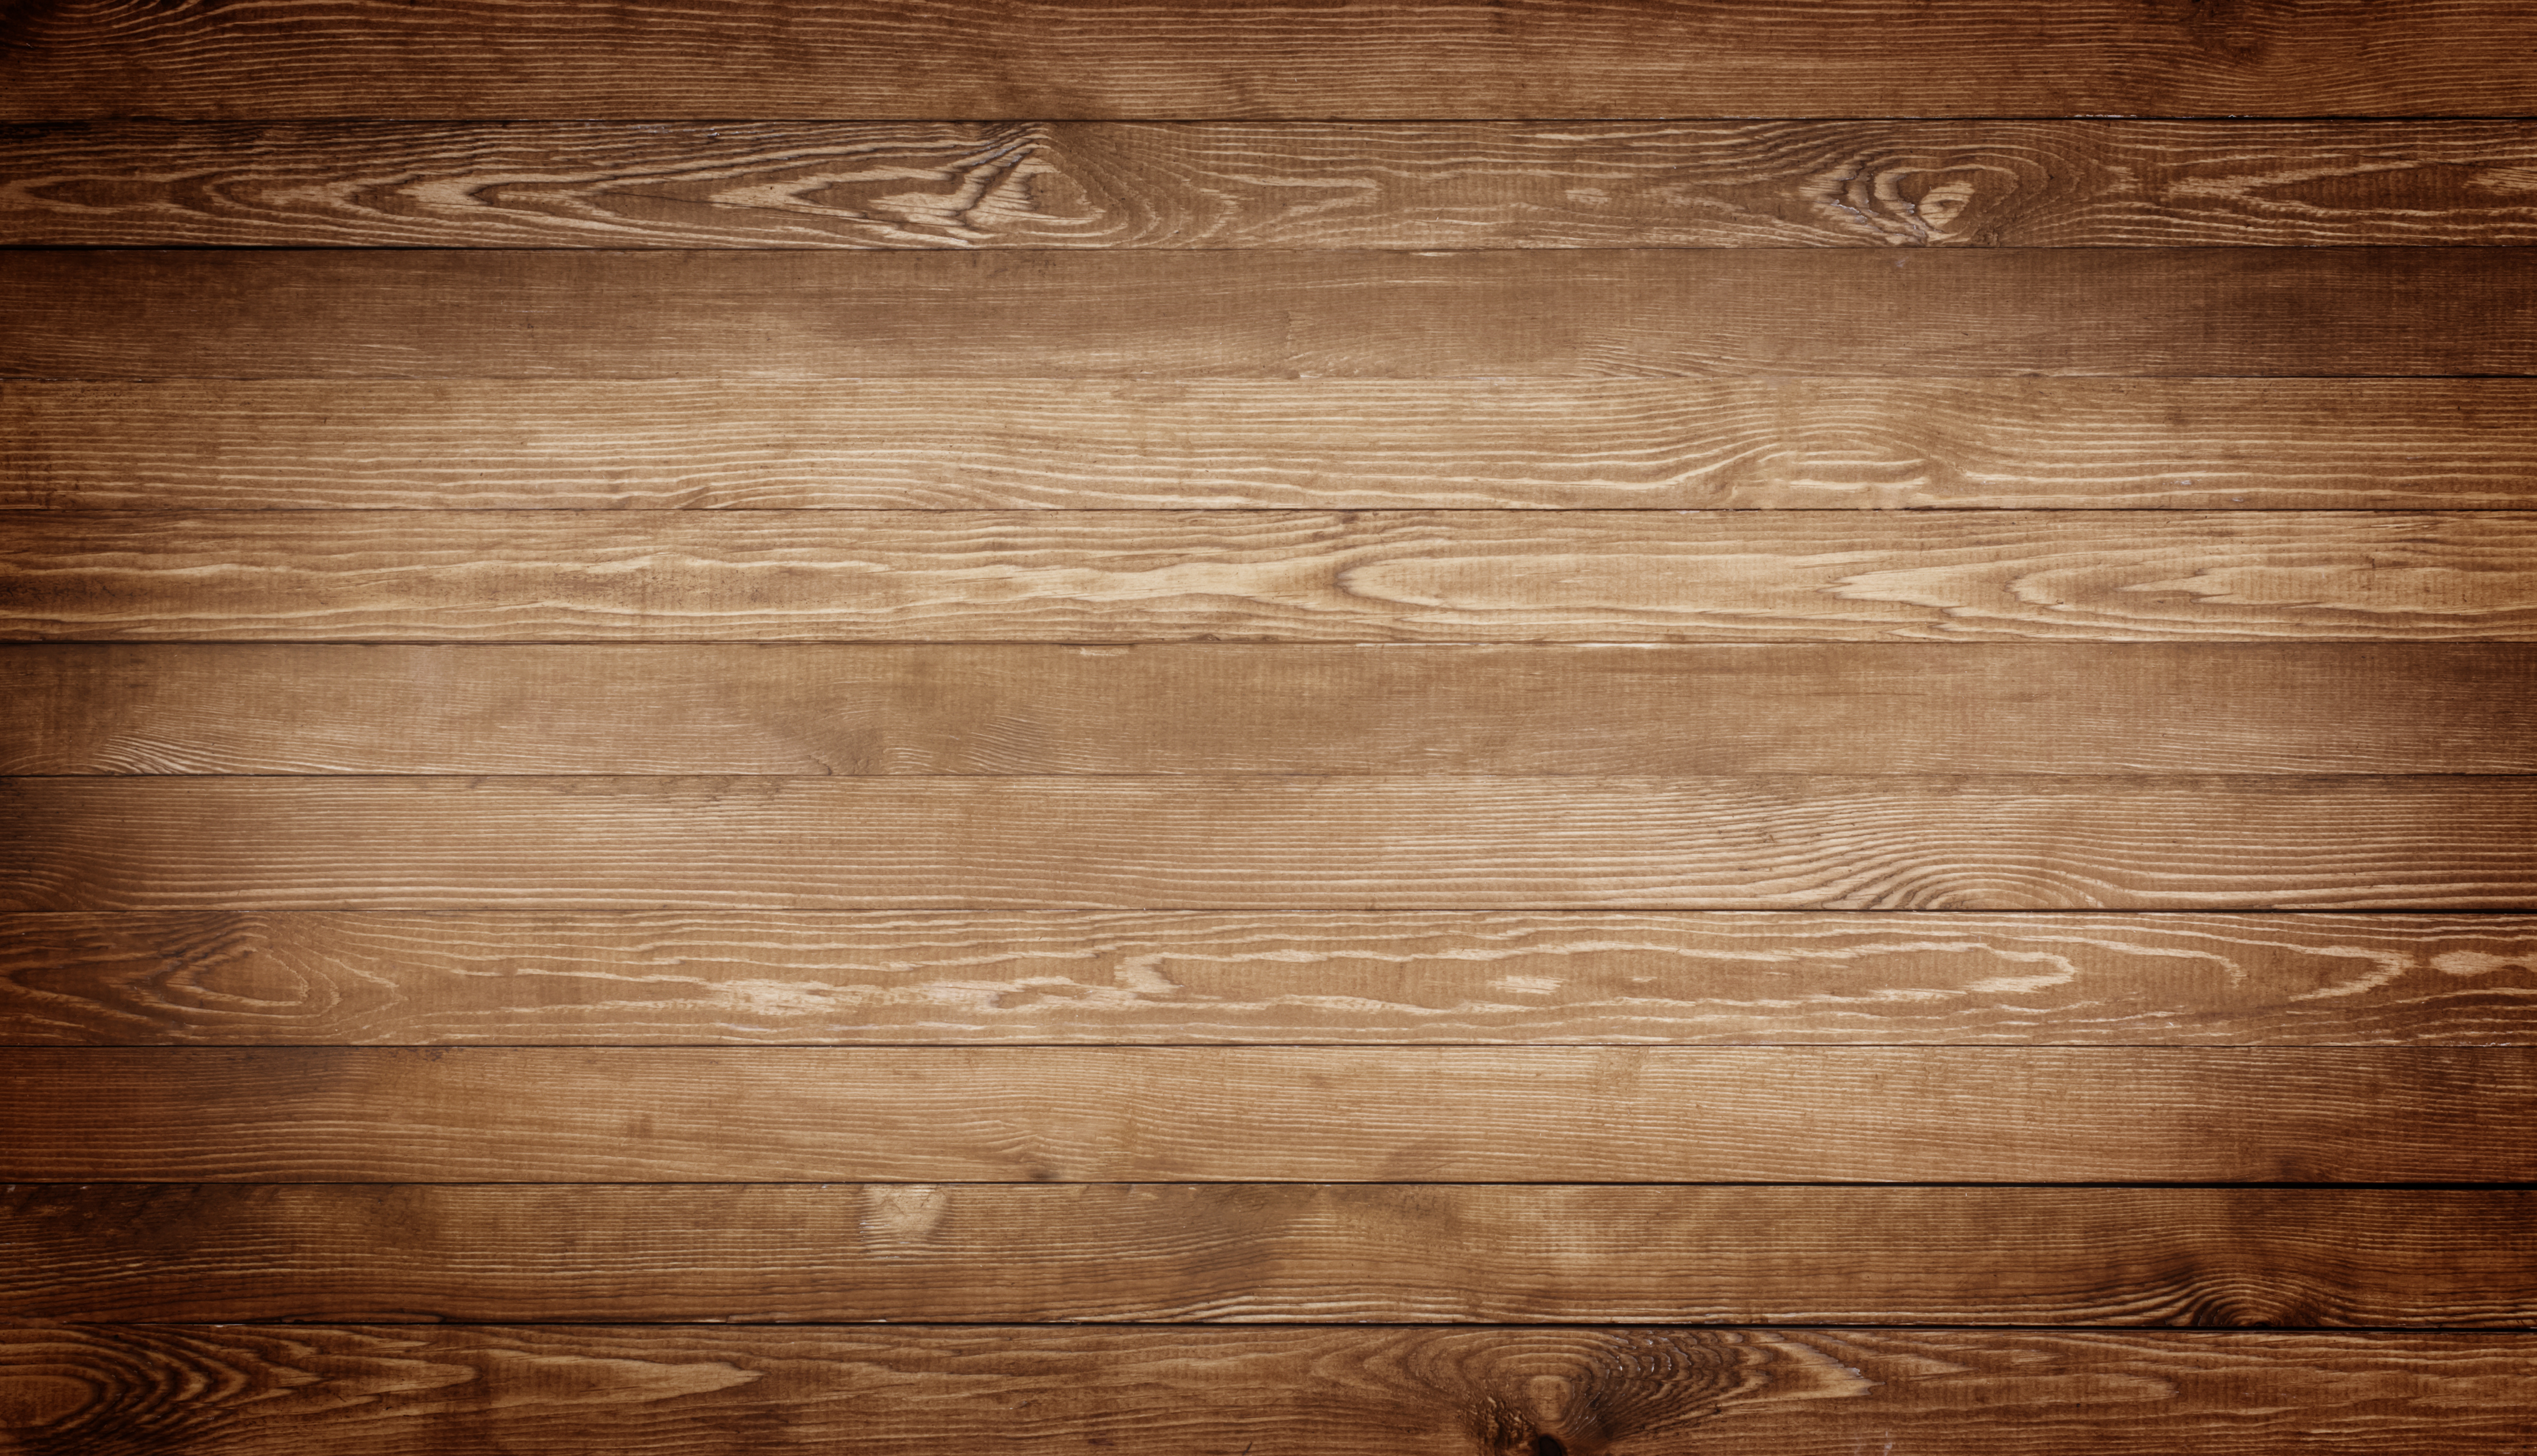 Wood Texture Background. Vintage and Grunge style. - Life Church ...